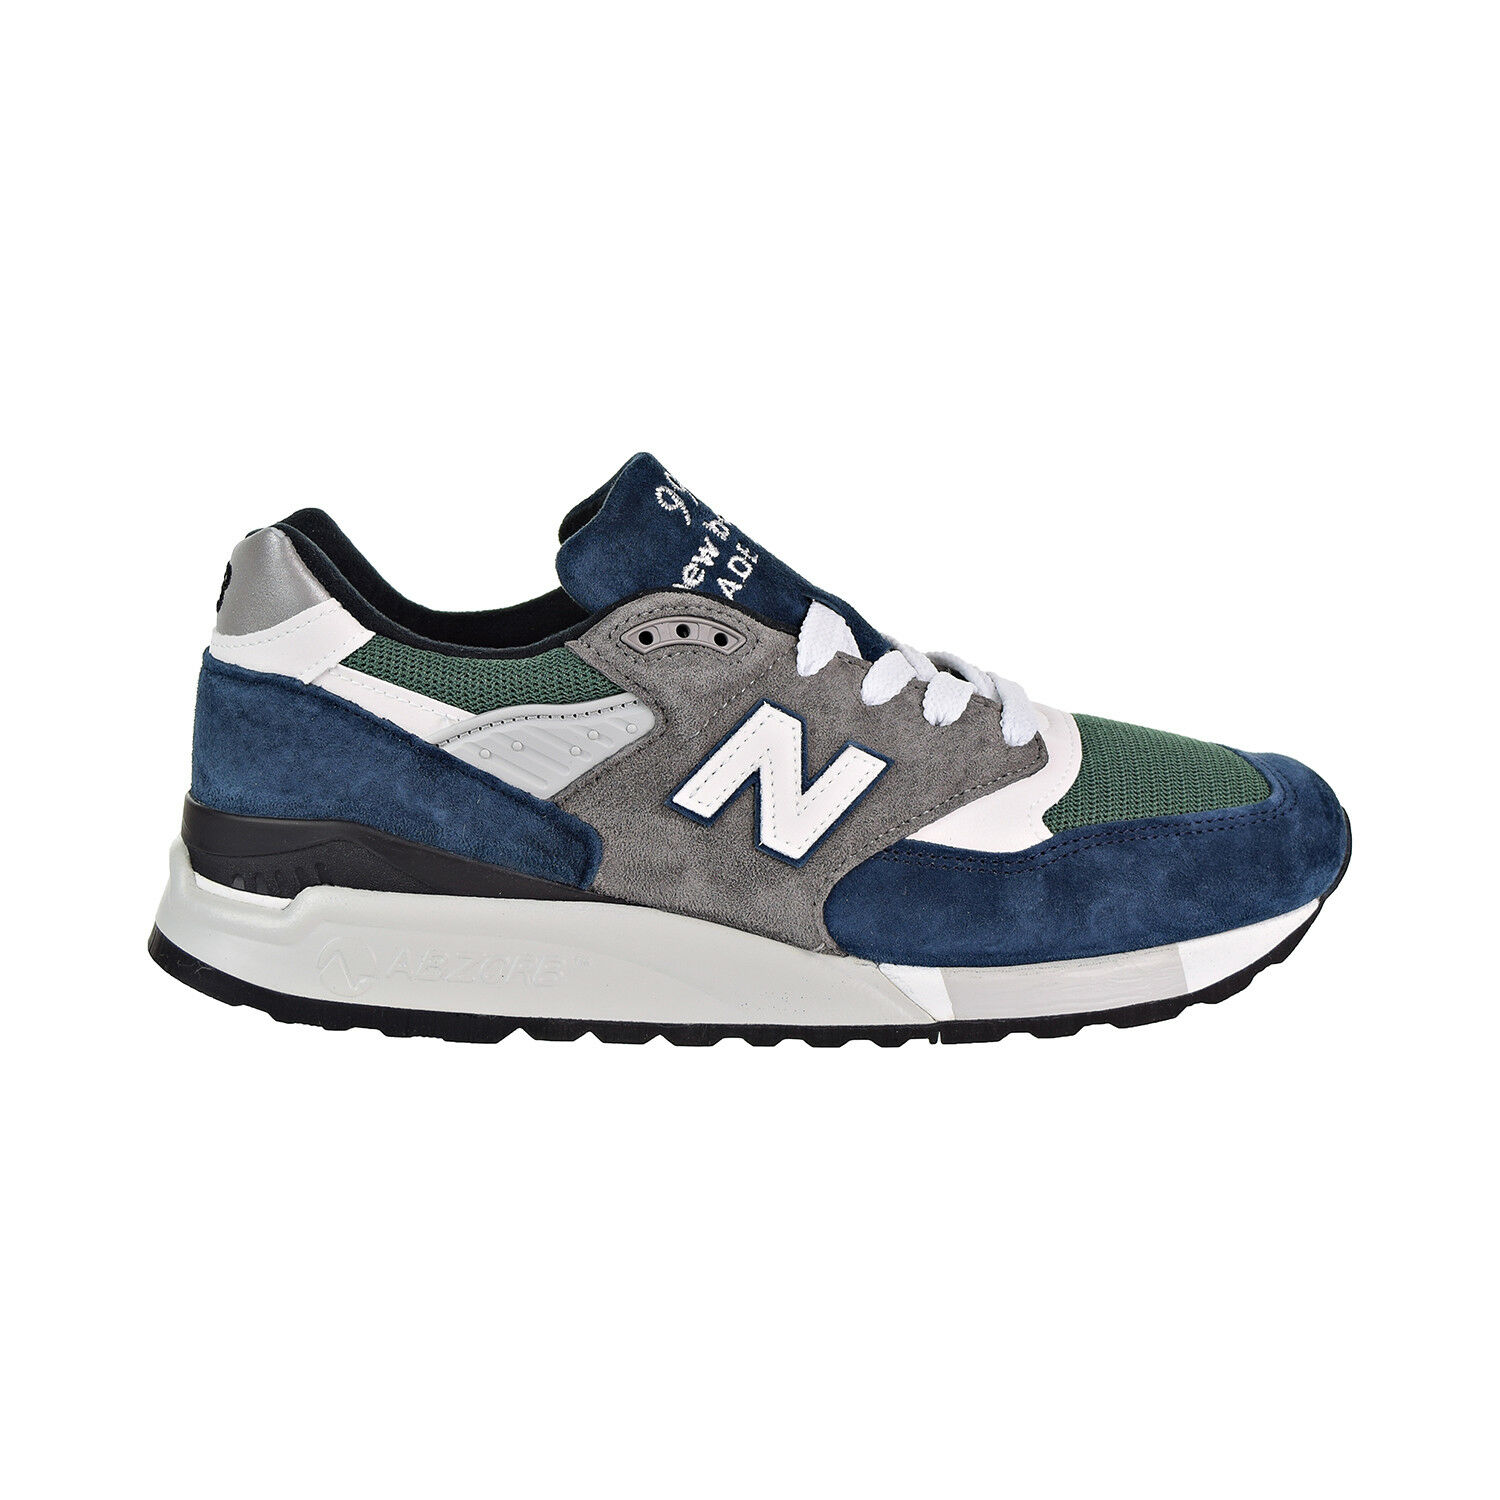 New Balance 998 Made In USA Men's shoes Navy Green Grey m998-nl